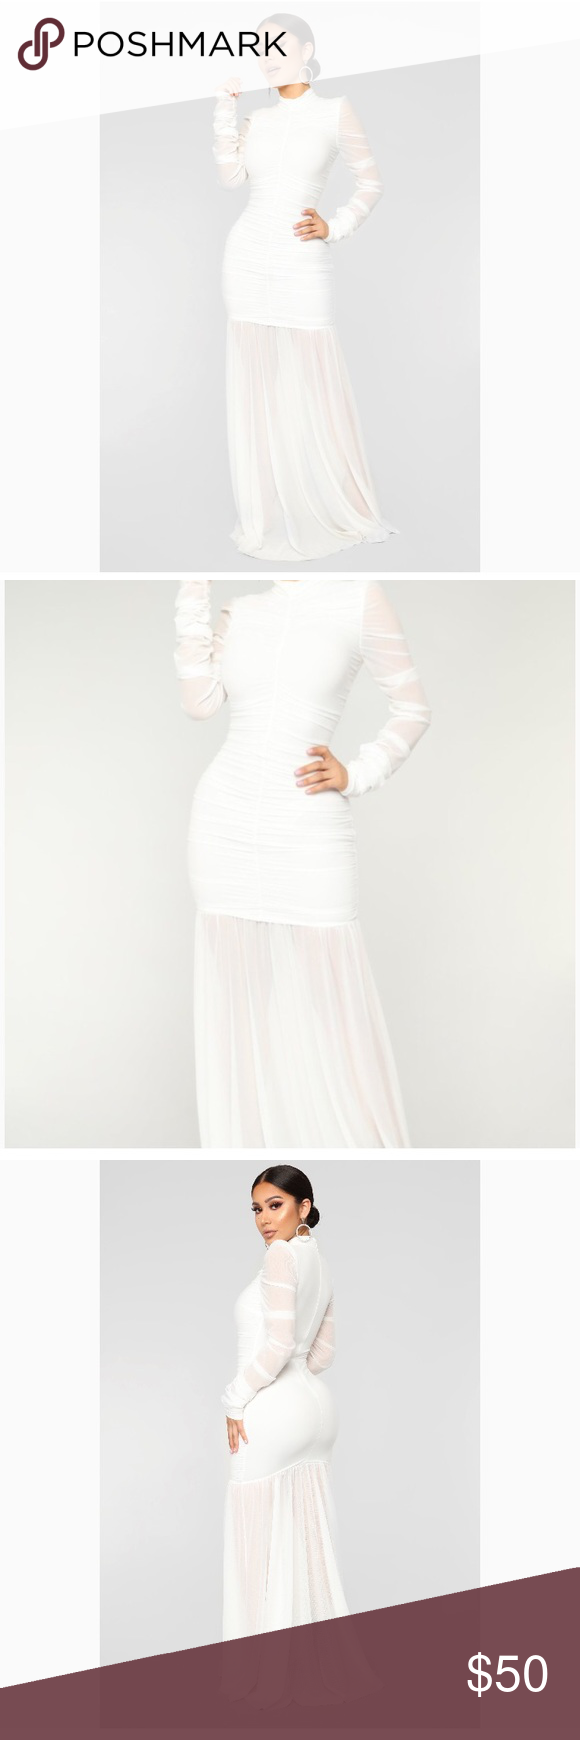 34f6669f95738 Cardi Party Ruched White Dress Condition: NWT Brand: Fashion Nova Size: XS  As seen on Cardi B on SNL!🎊 Fashion Nova Dresses Maxi